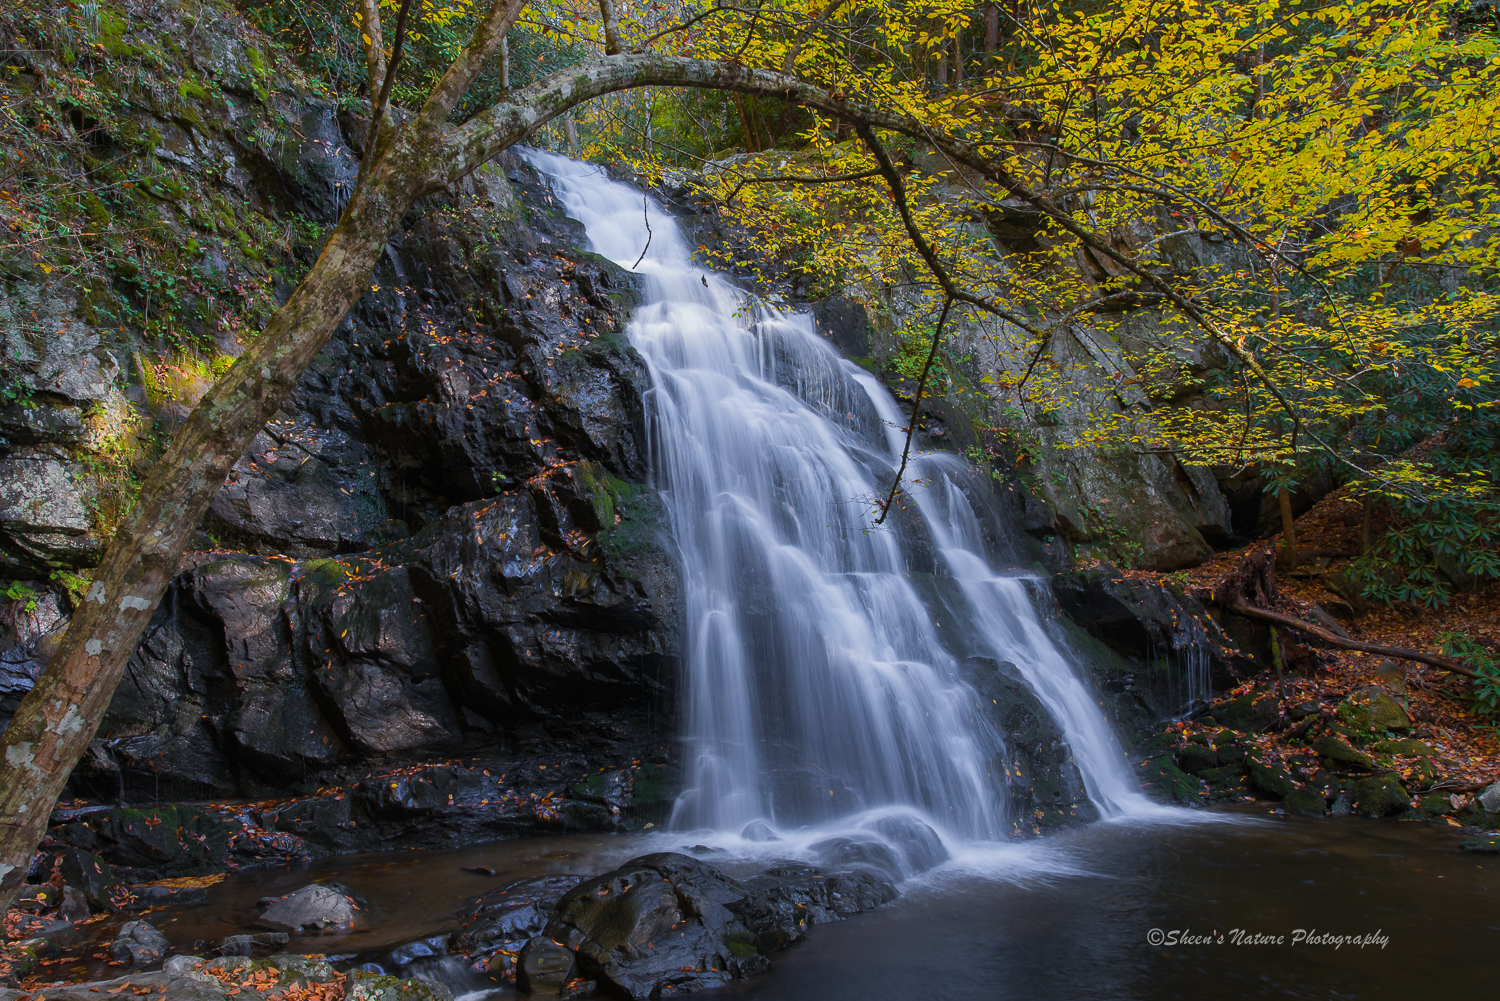 Waterfall in Autumn by ©Sheen's Nature Photography